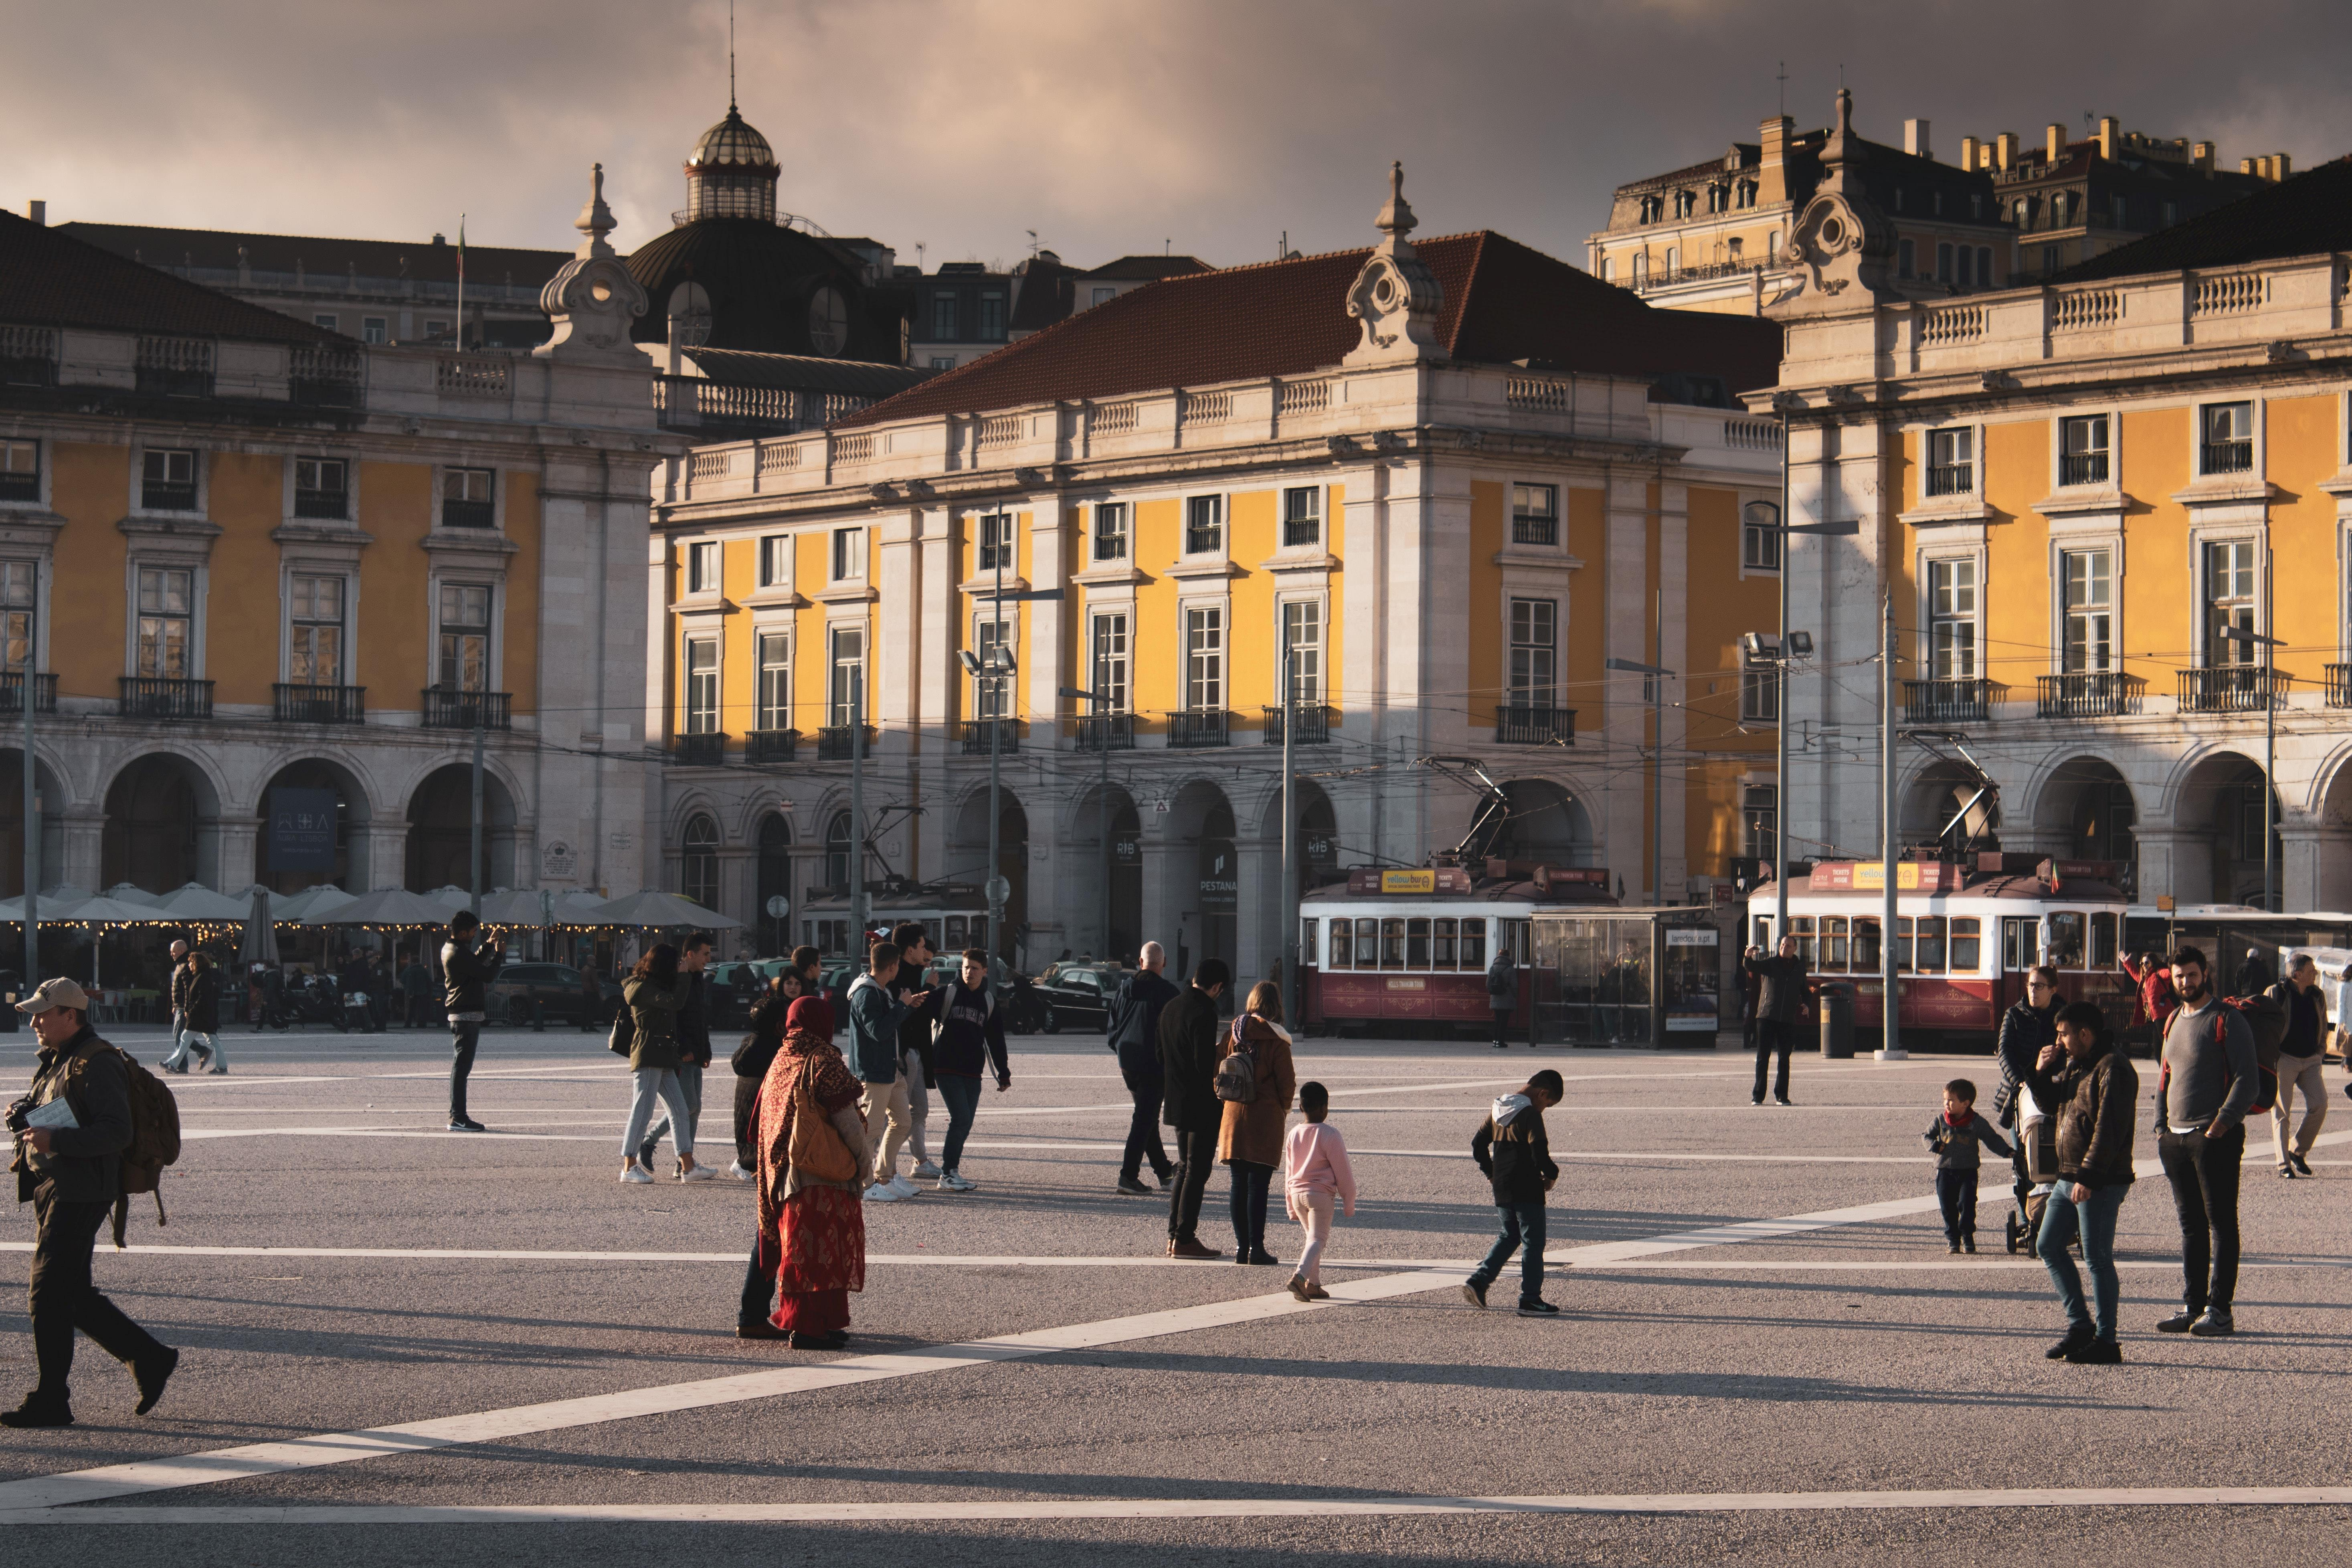 FREE TOUR OF SLAVERY AND INQUISITION IN LISBON